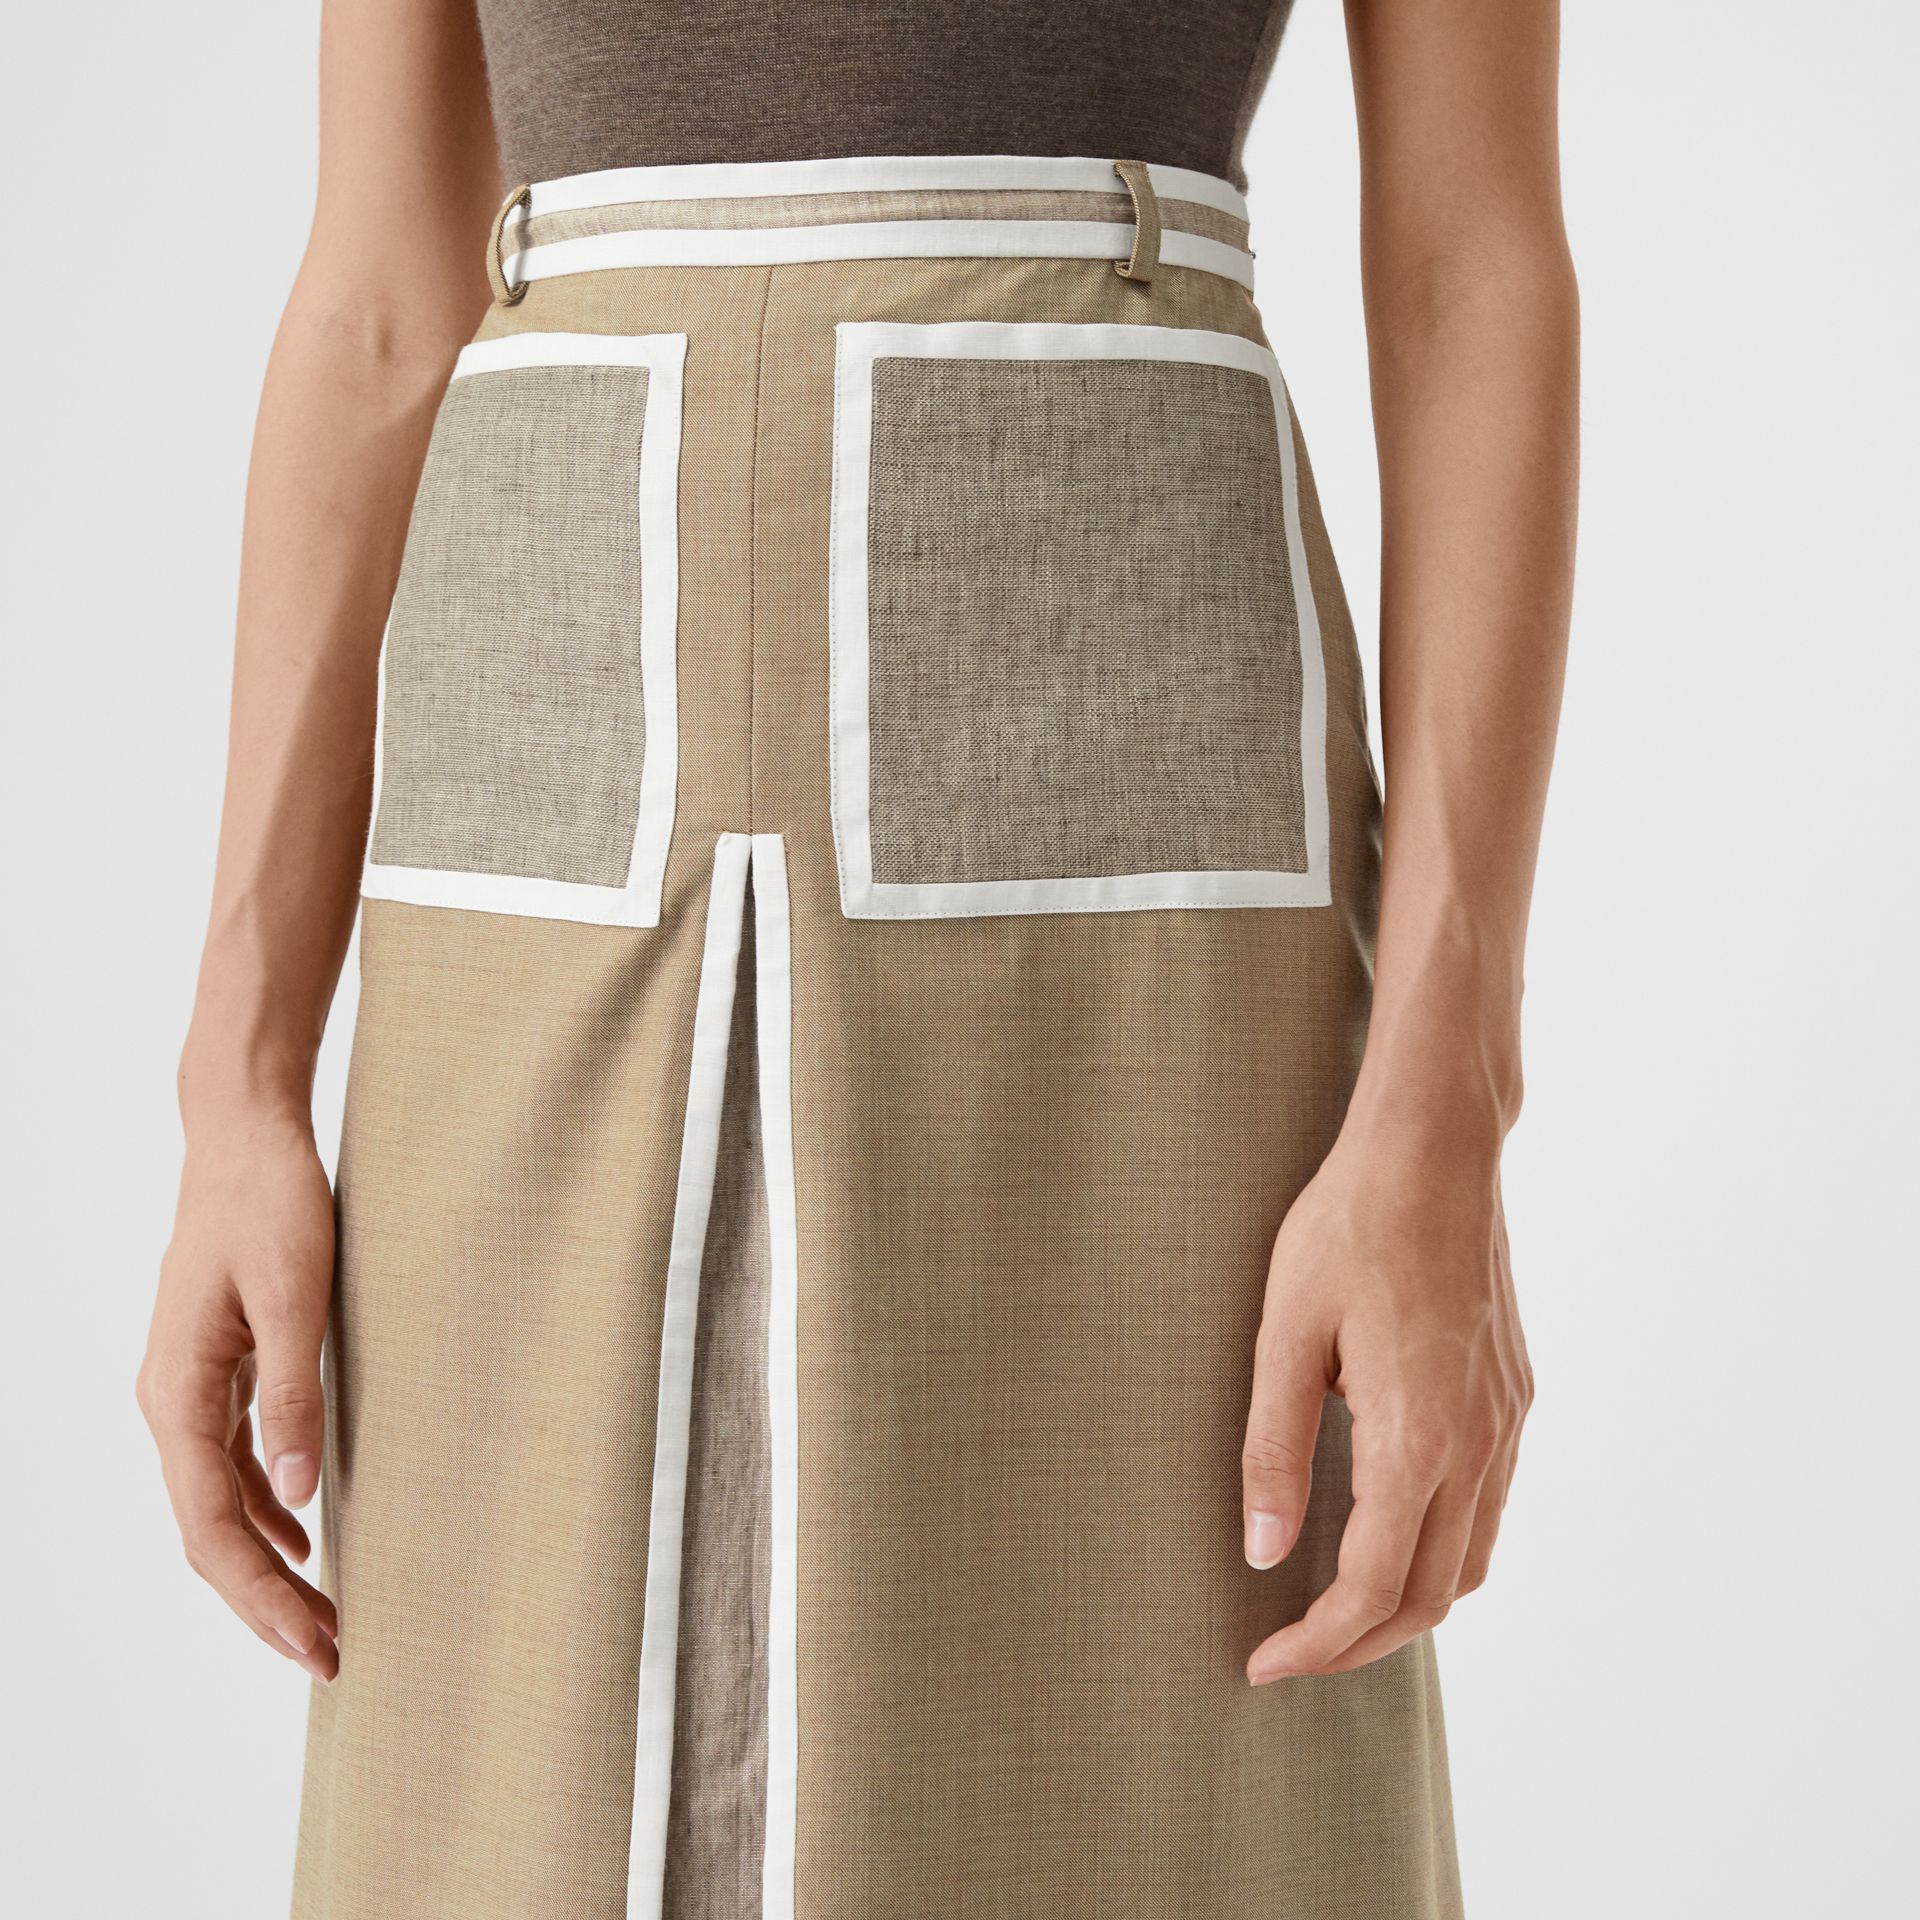 Box-pleat Detail Wool Cashmere A-line Skirt in Pecan Melange - Women | Burberry - gallery image 1